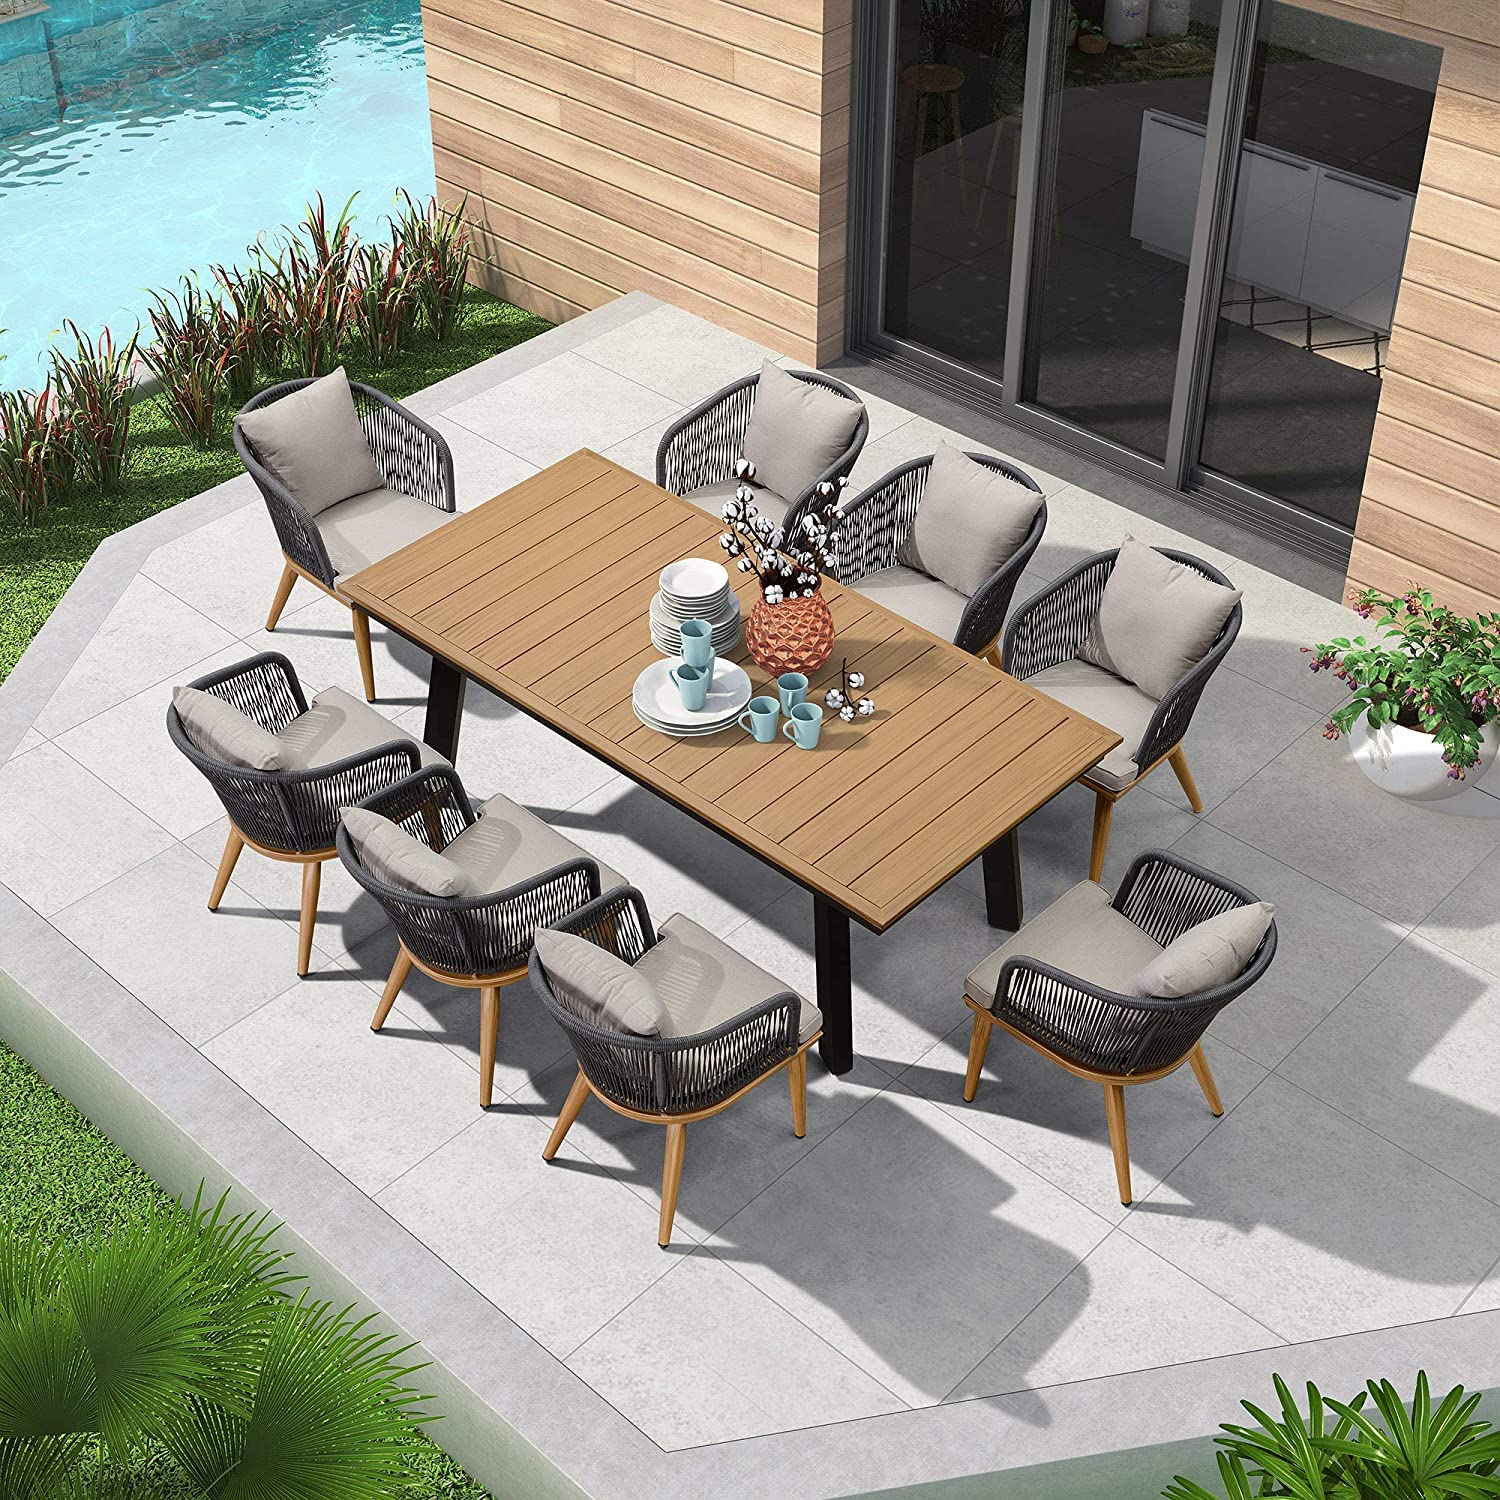 PURPLE LEAF 9 Pieces Patio Dining R Set Furniture Reservation Wicker Outdoor Max 65% OFF